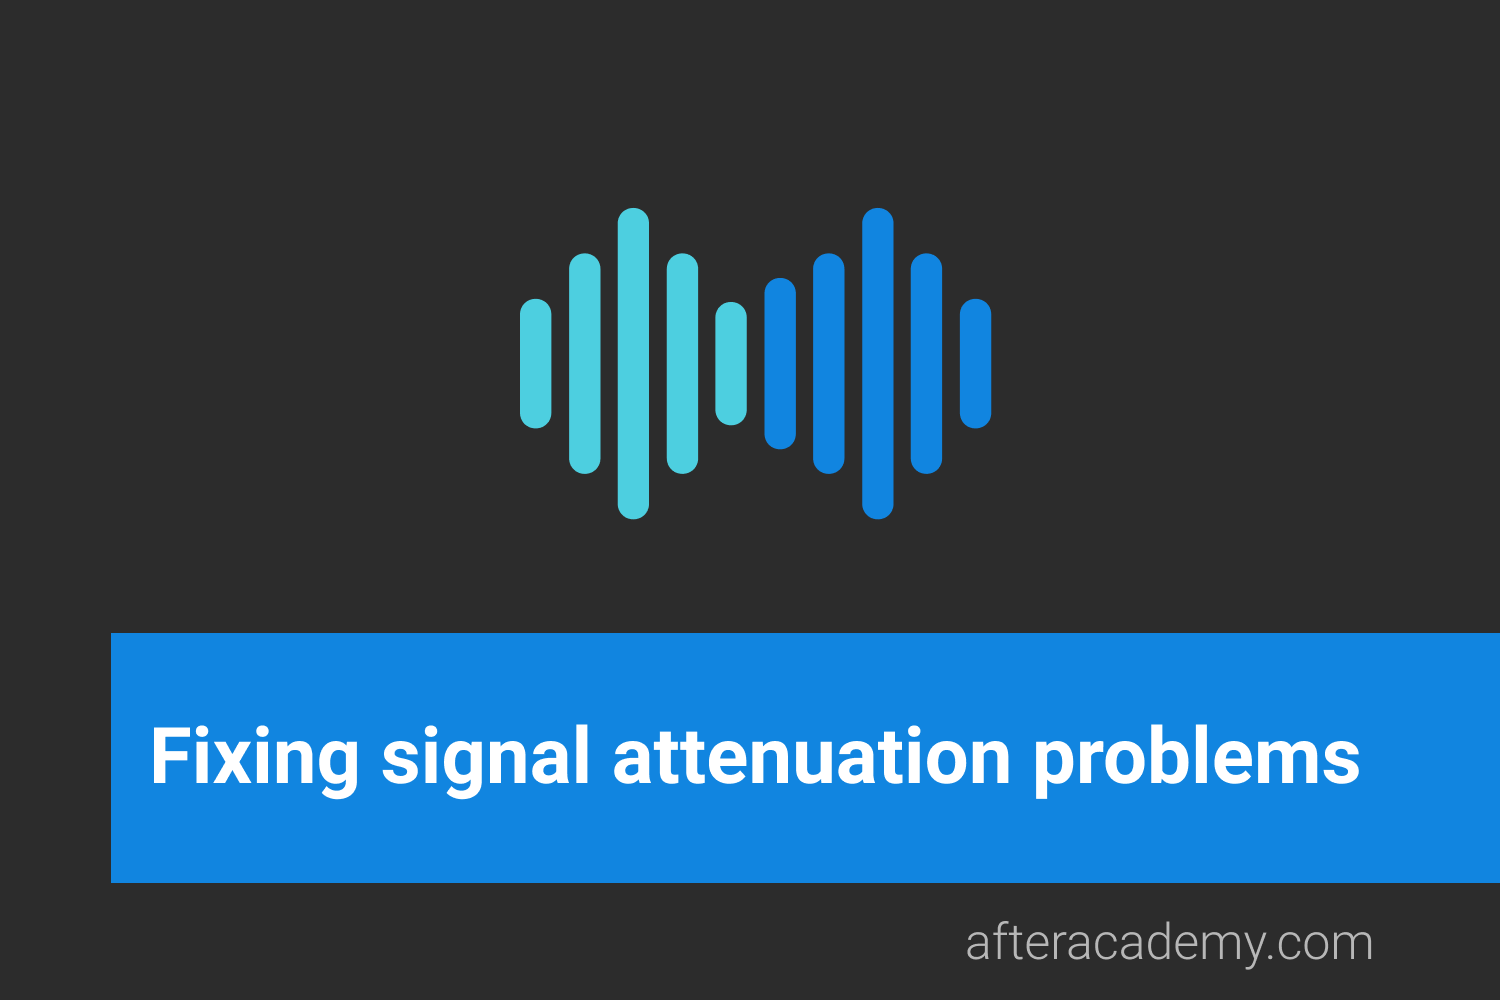 What can be done to fix signal attenuation problems?